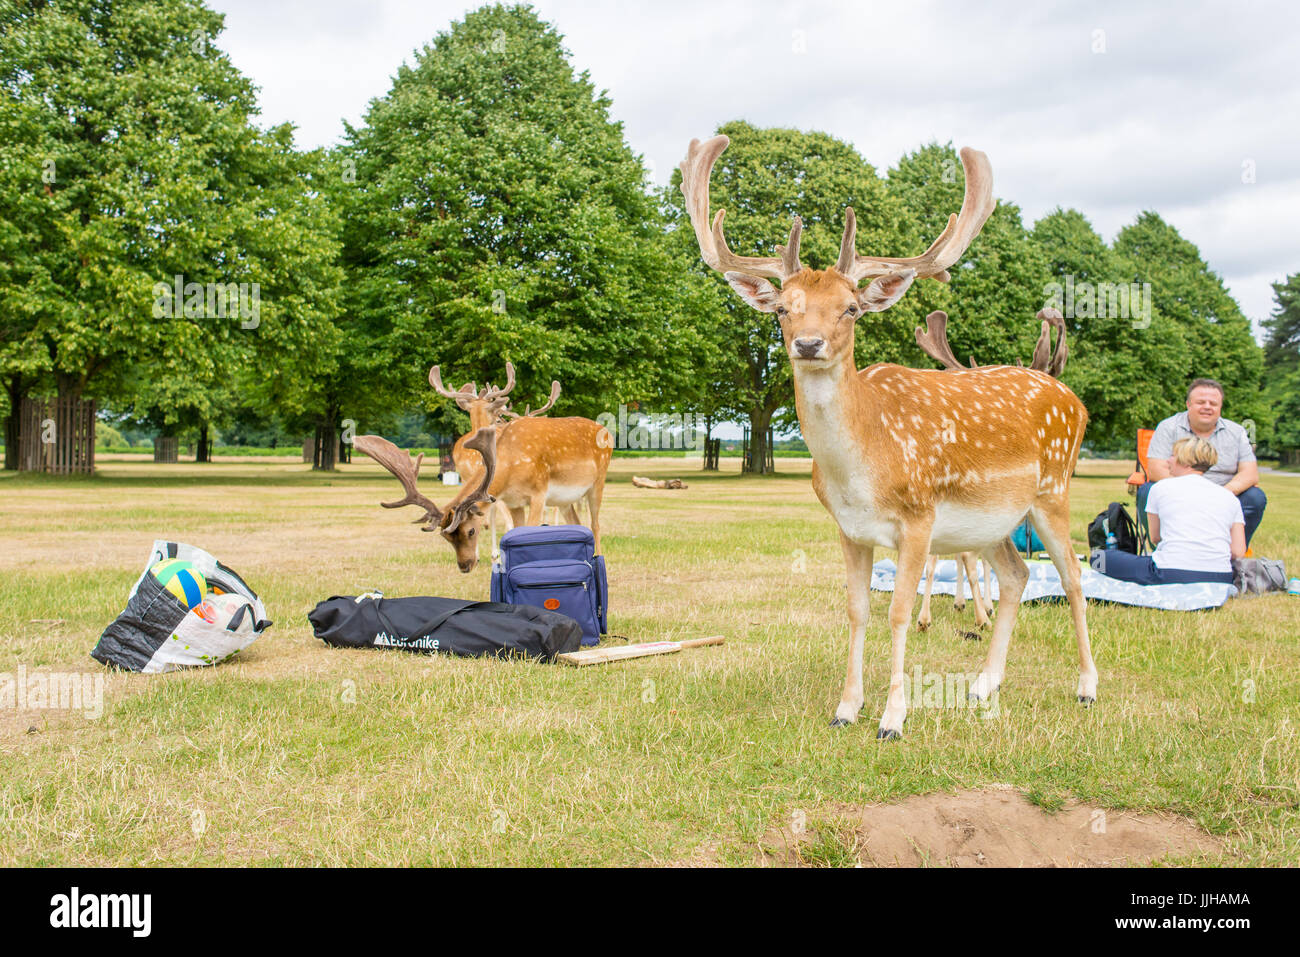 Richmond, London, UK - Juillet 2017 : troupeau de daims sur une prairie d'herbe à côté de Photo Stock